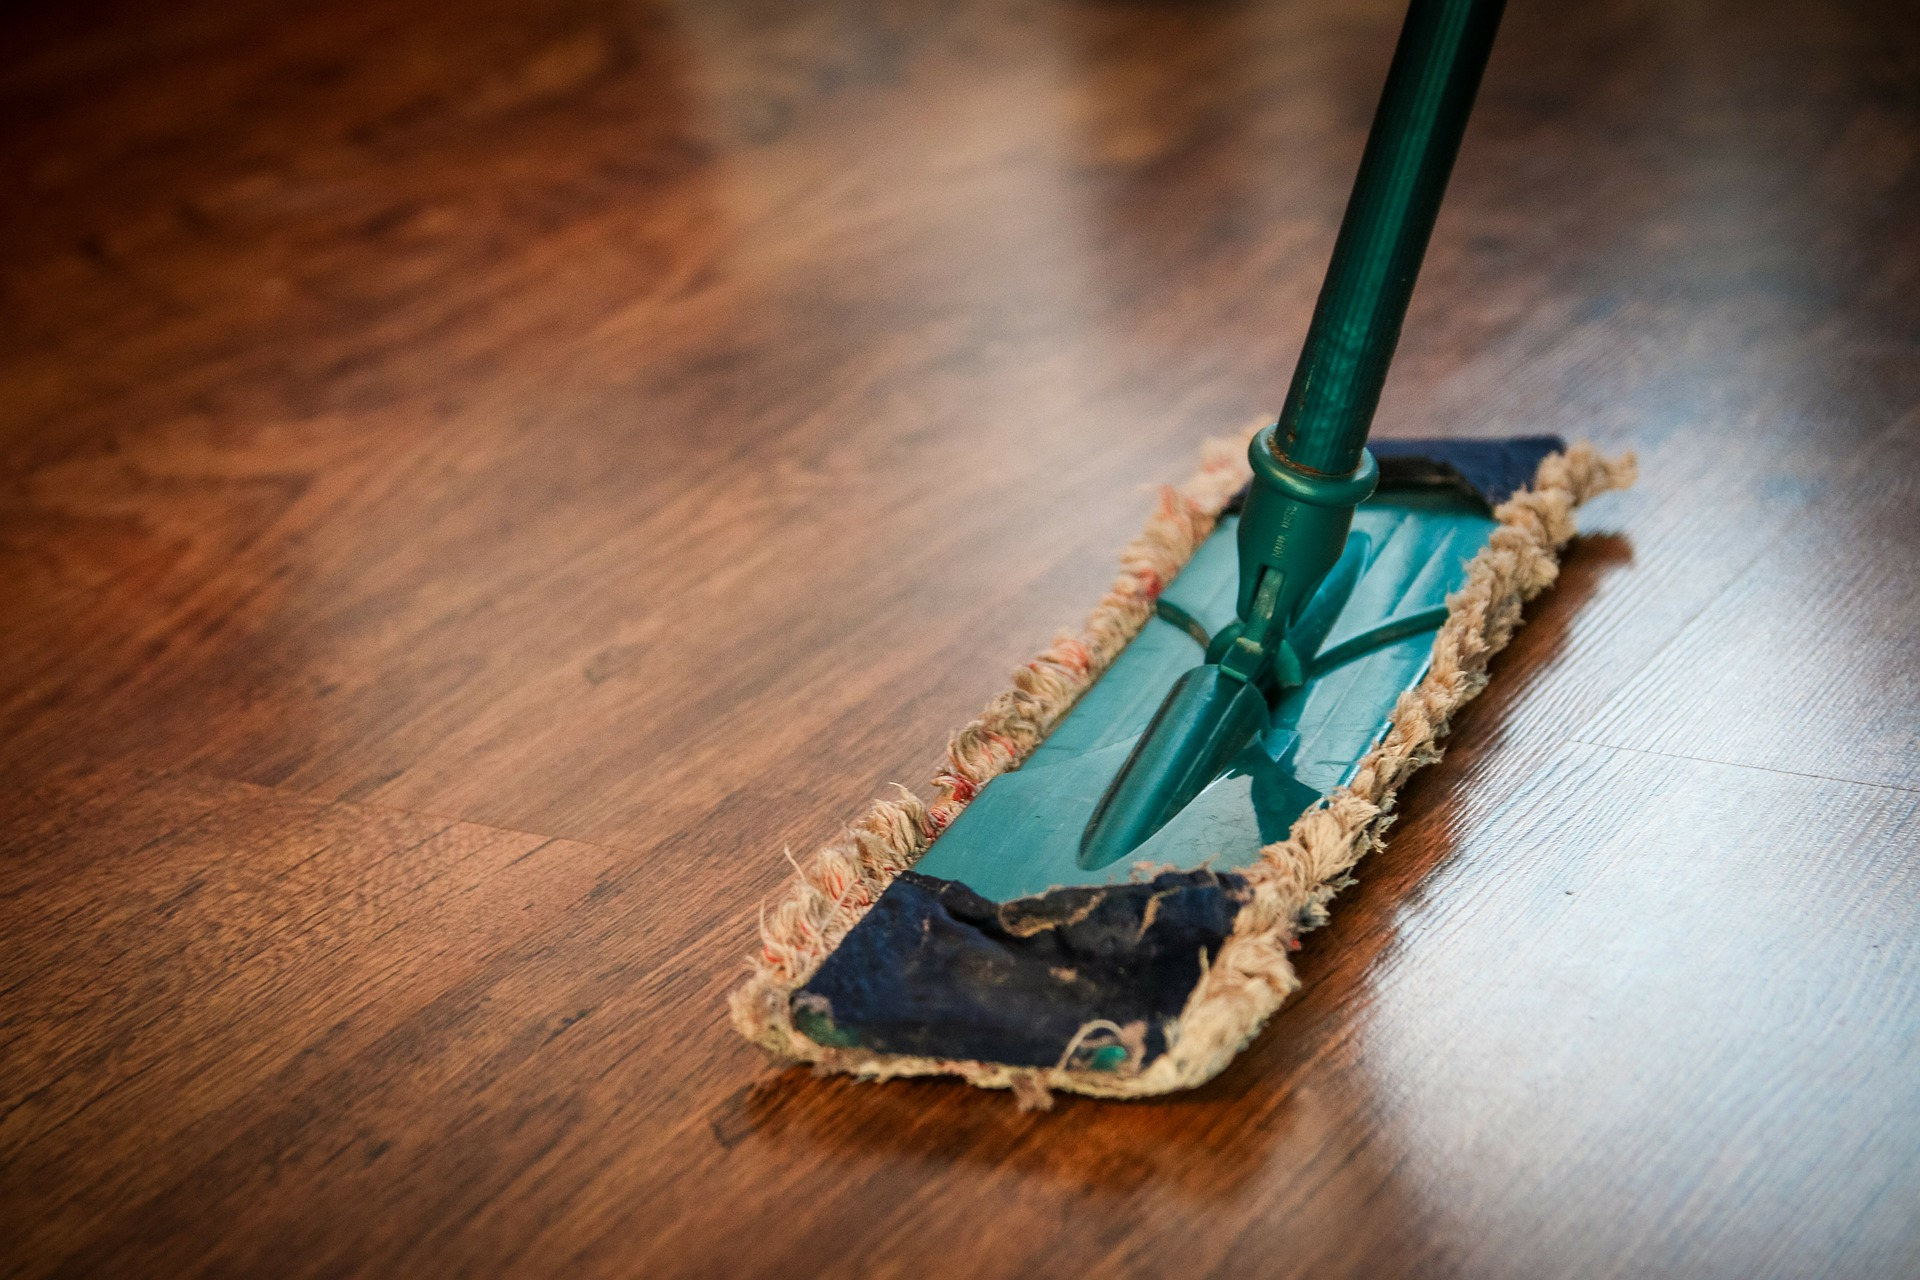 wood clean mop natural floors hardwood for oak cleaner how to full old shine cleaning shiny make floor size best diy of